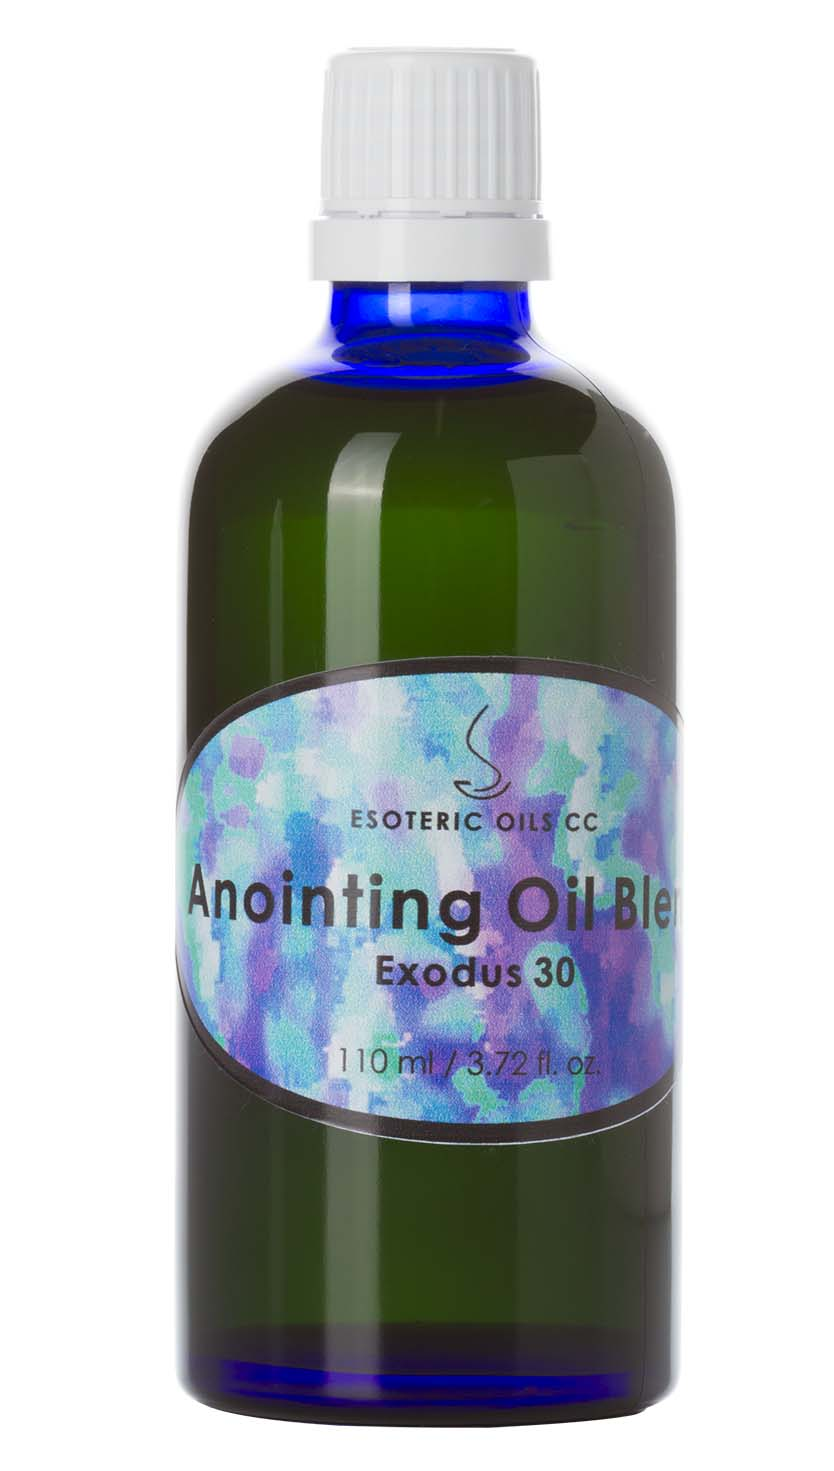 Exodus 30 Anointing Oil